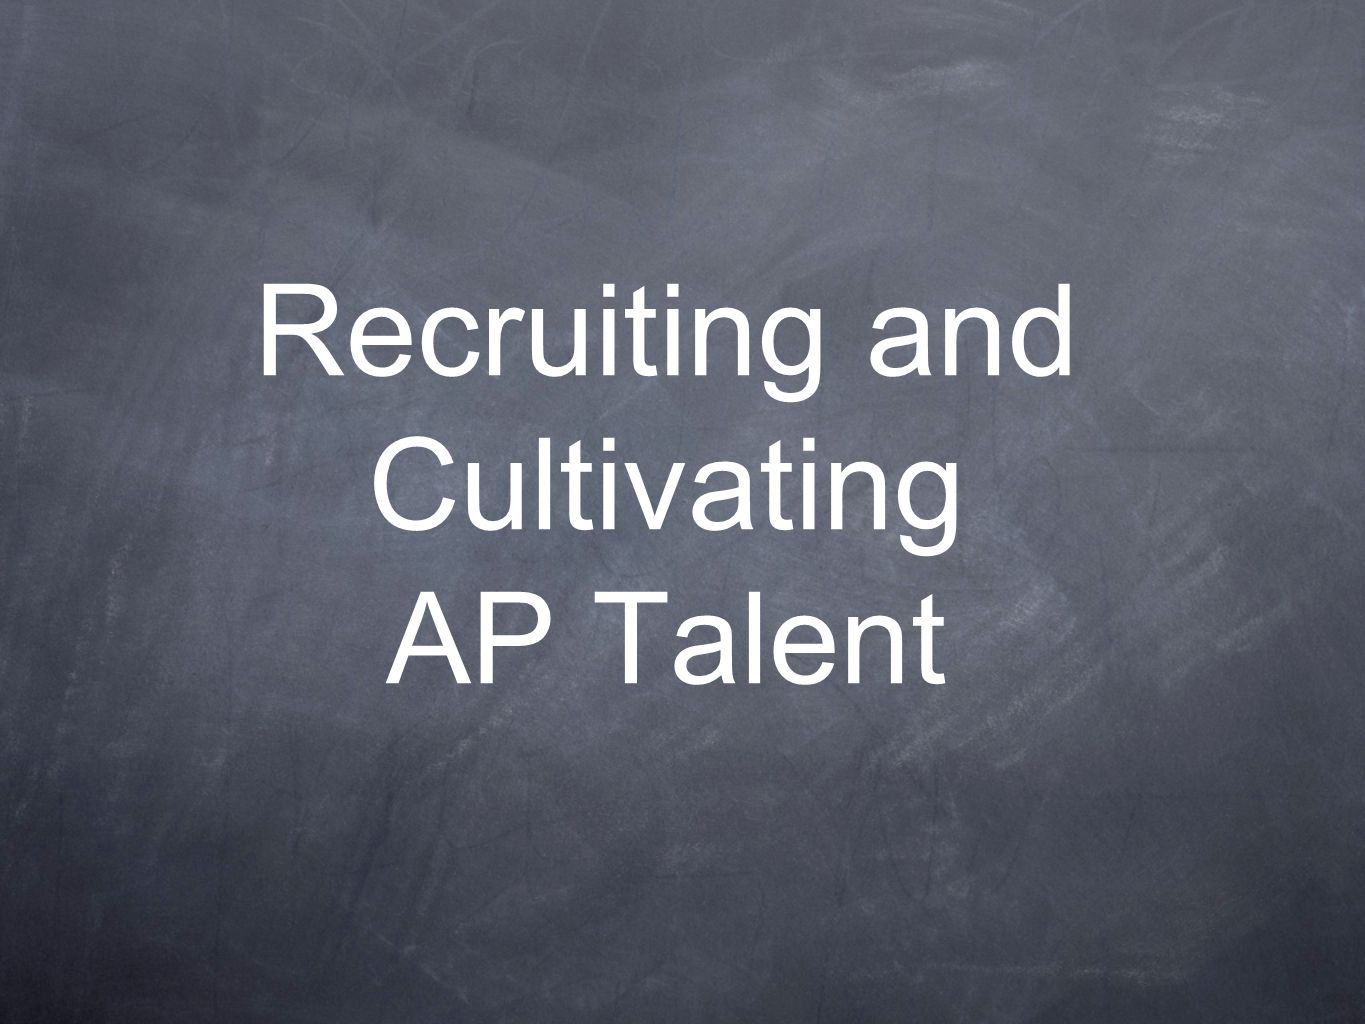 To what degree would PD opportunities attract you to the AP program? Very likely: 100%